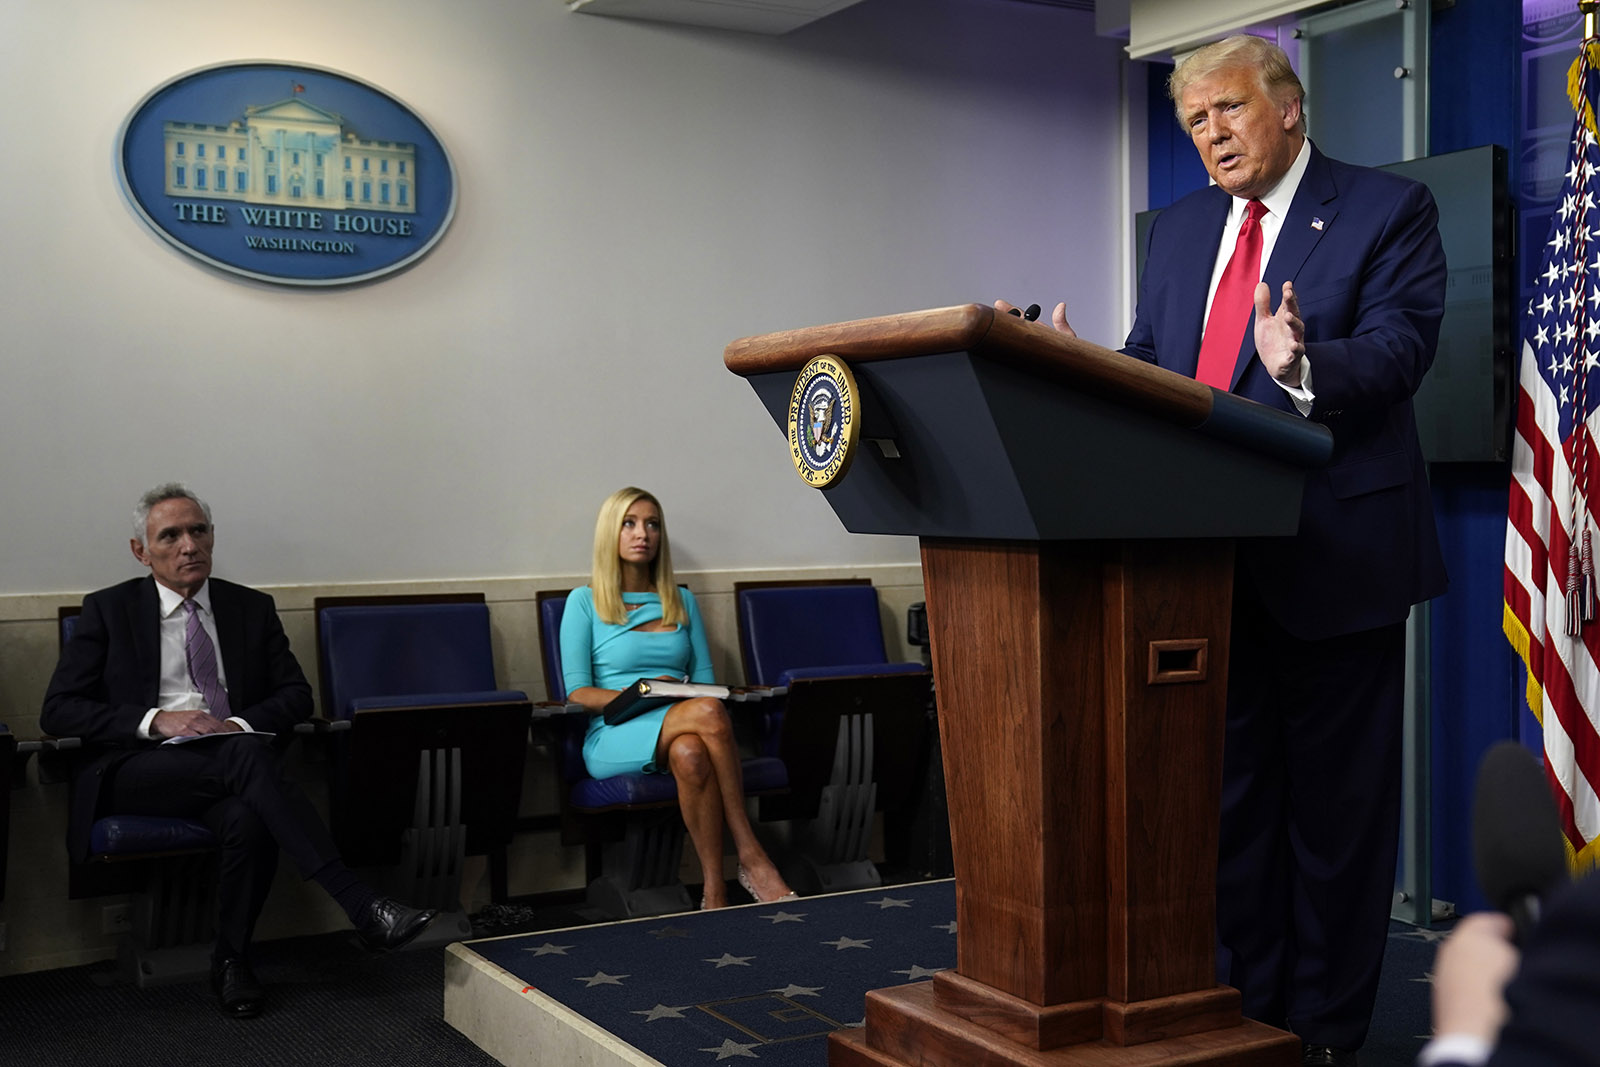 President Donald Trump speaks during a news conference at the White House on Wednesday in Washington.